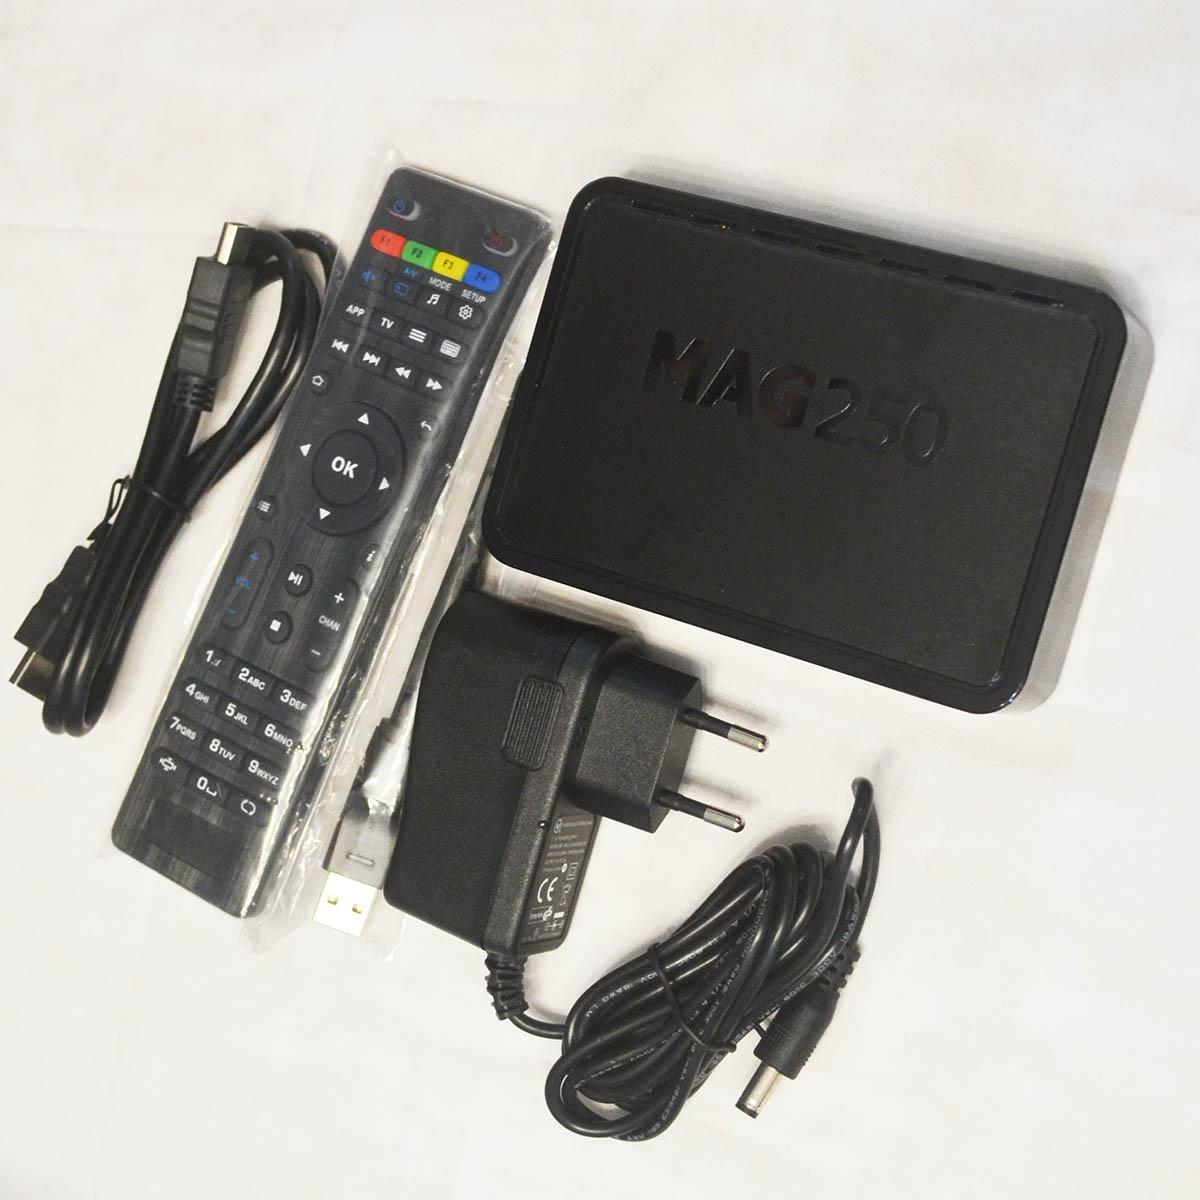 New MAG250 & 150M Wireless antenna Linux System streaming Home Theatre system TV BOX Media Player MAG 250 Same MAG254 MAG322